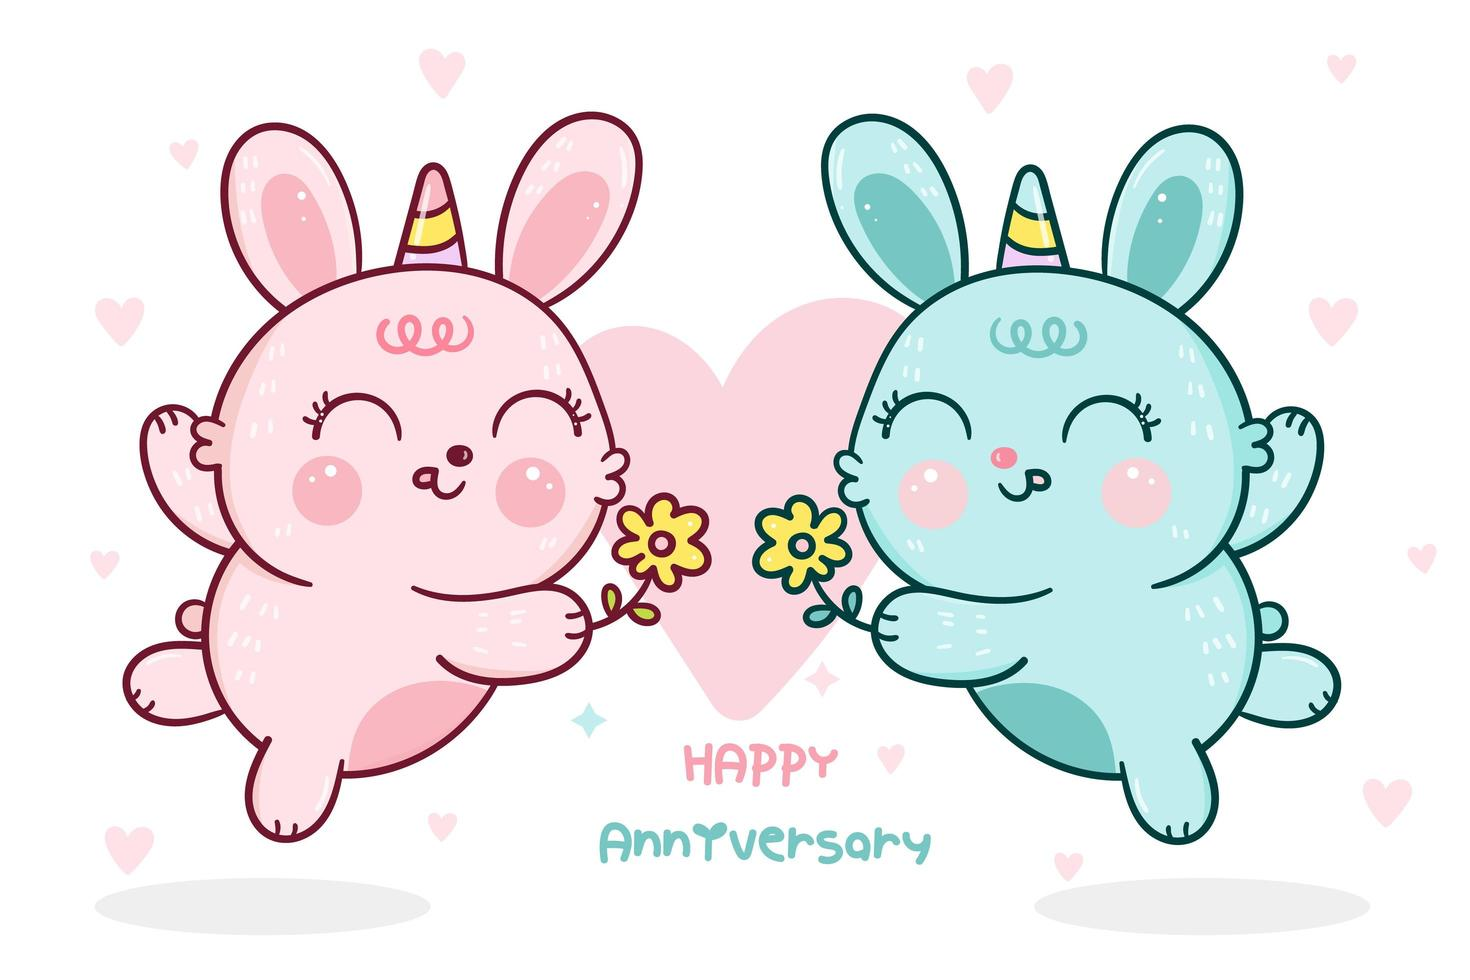 Rabbits with horns giving flowers for anniversary vector